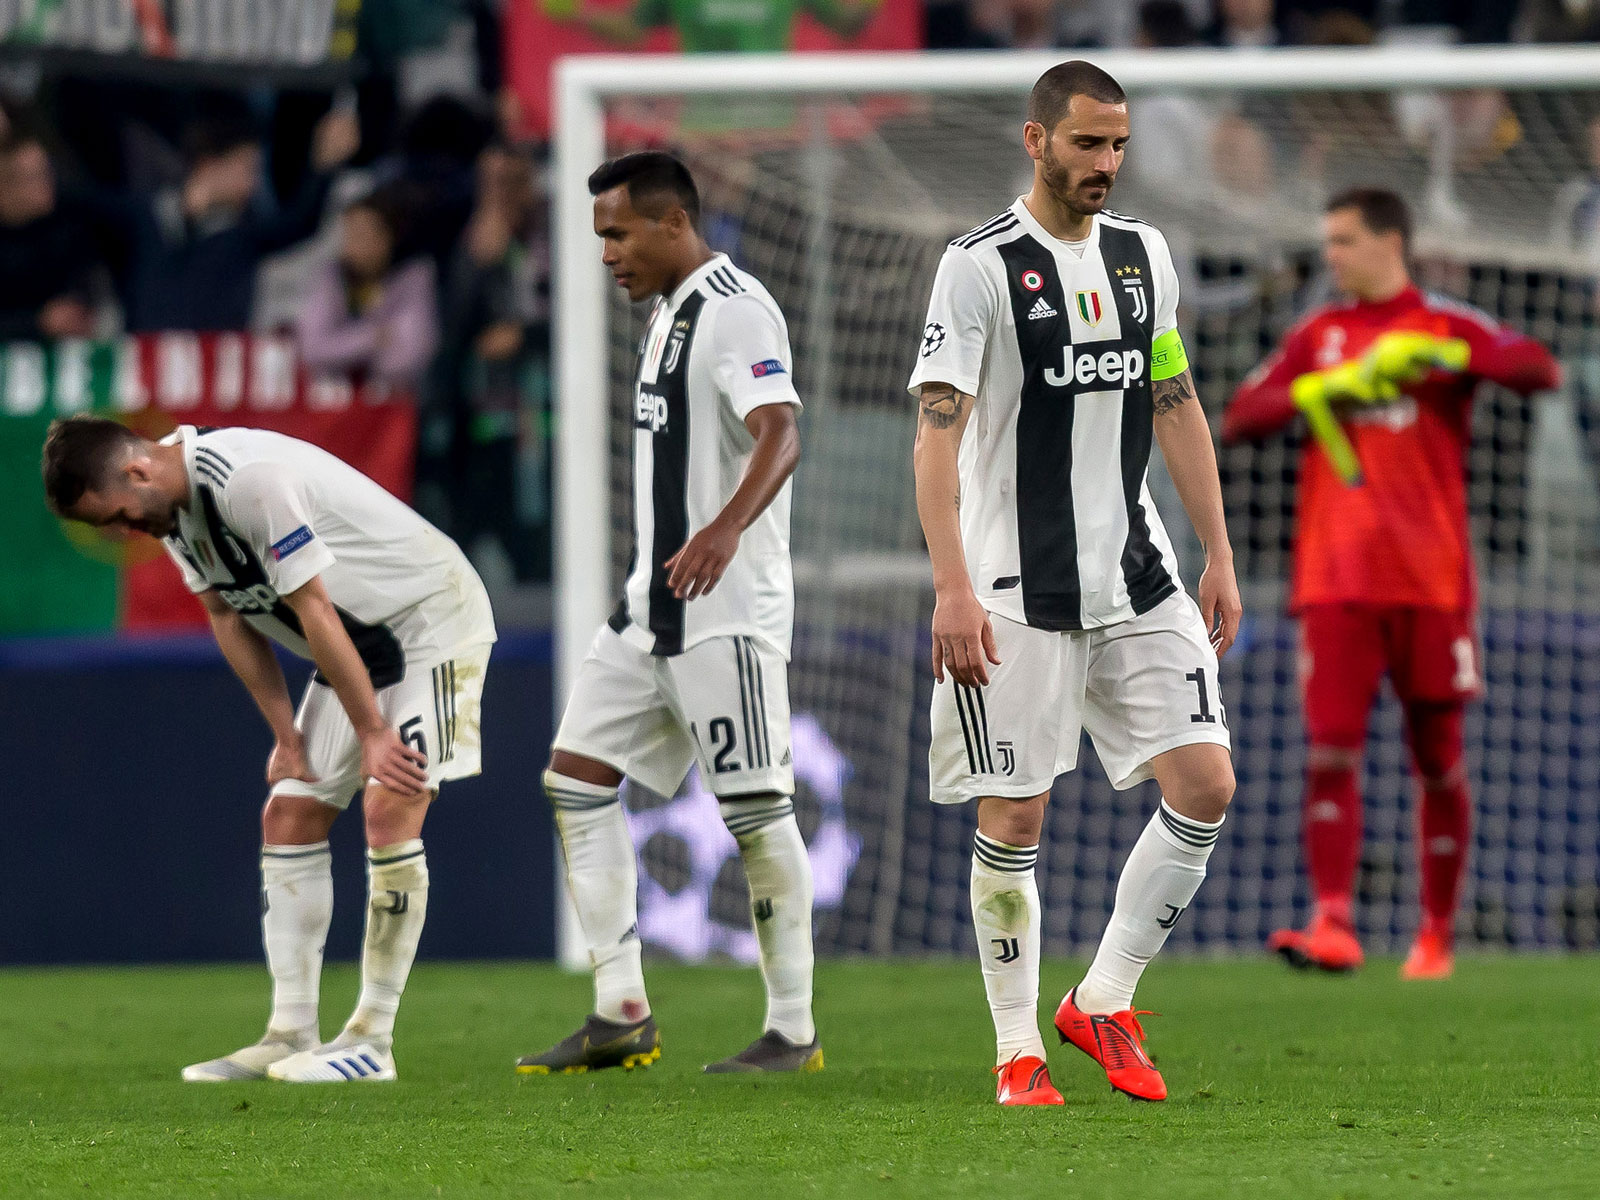 Juventus is ousted by Ajax in the Champions League